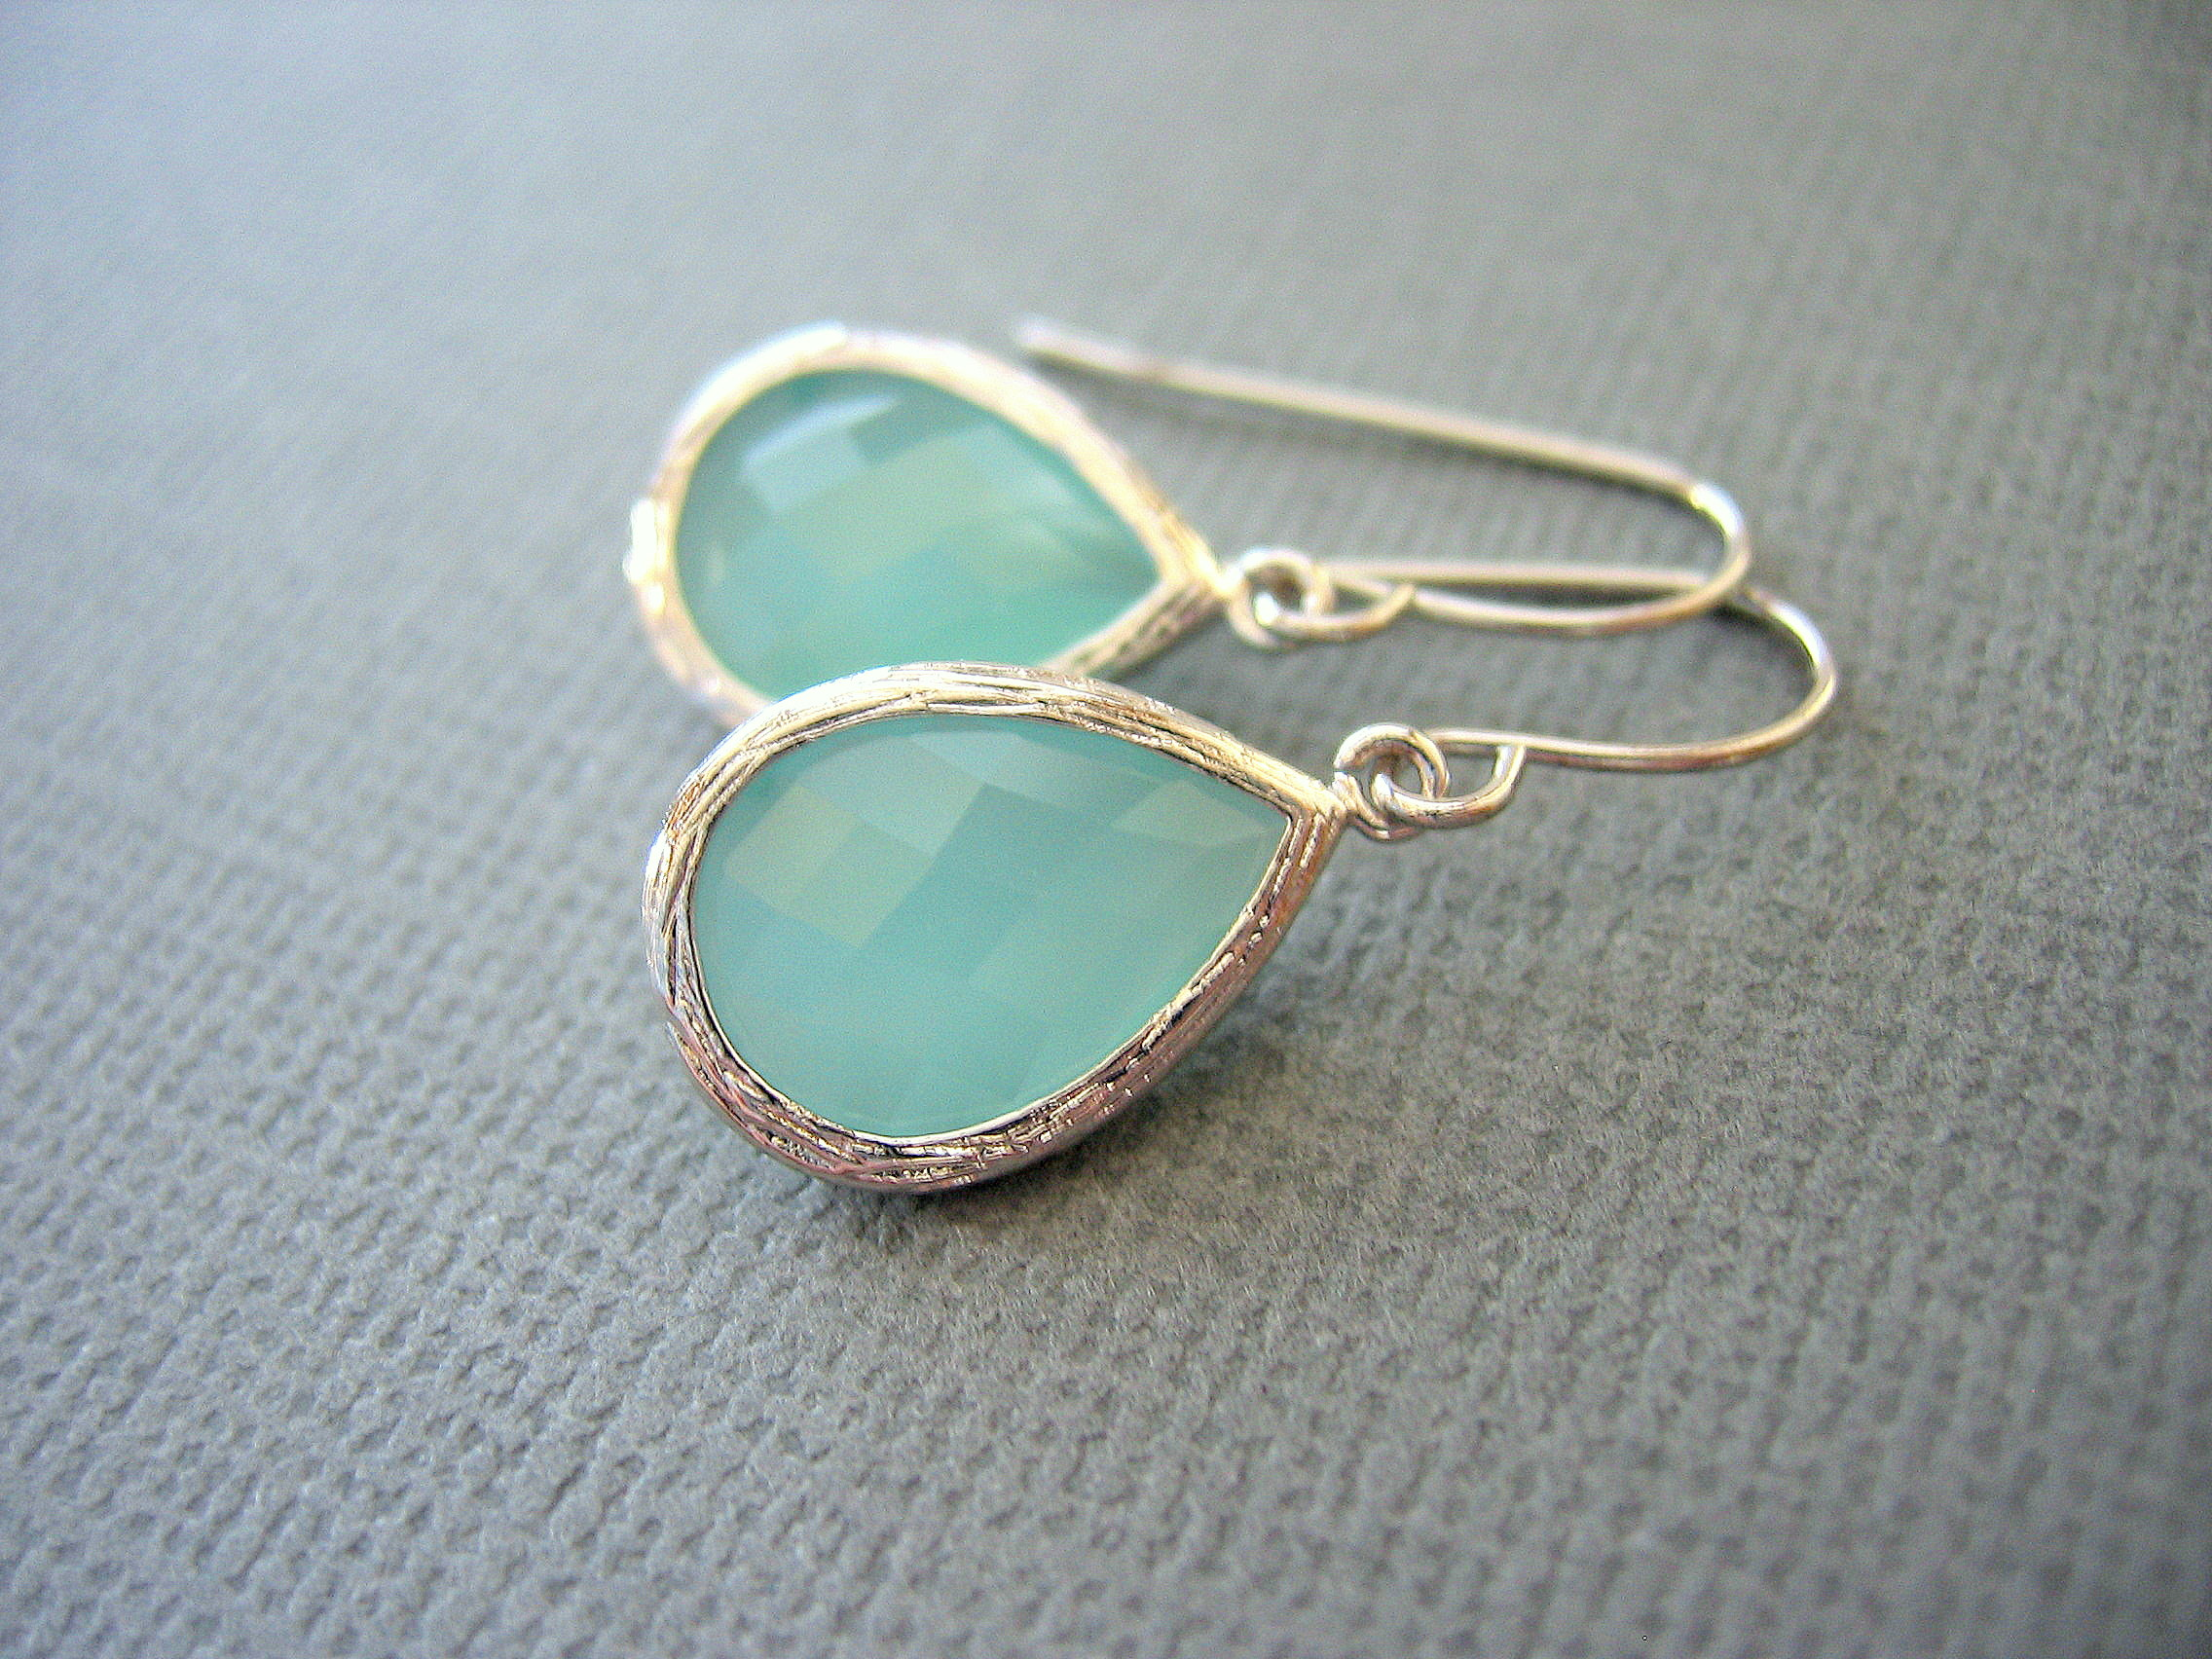 Aqua Earrings Mint Green White Gold Teardrop Dangle Wedding Jewelry